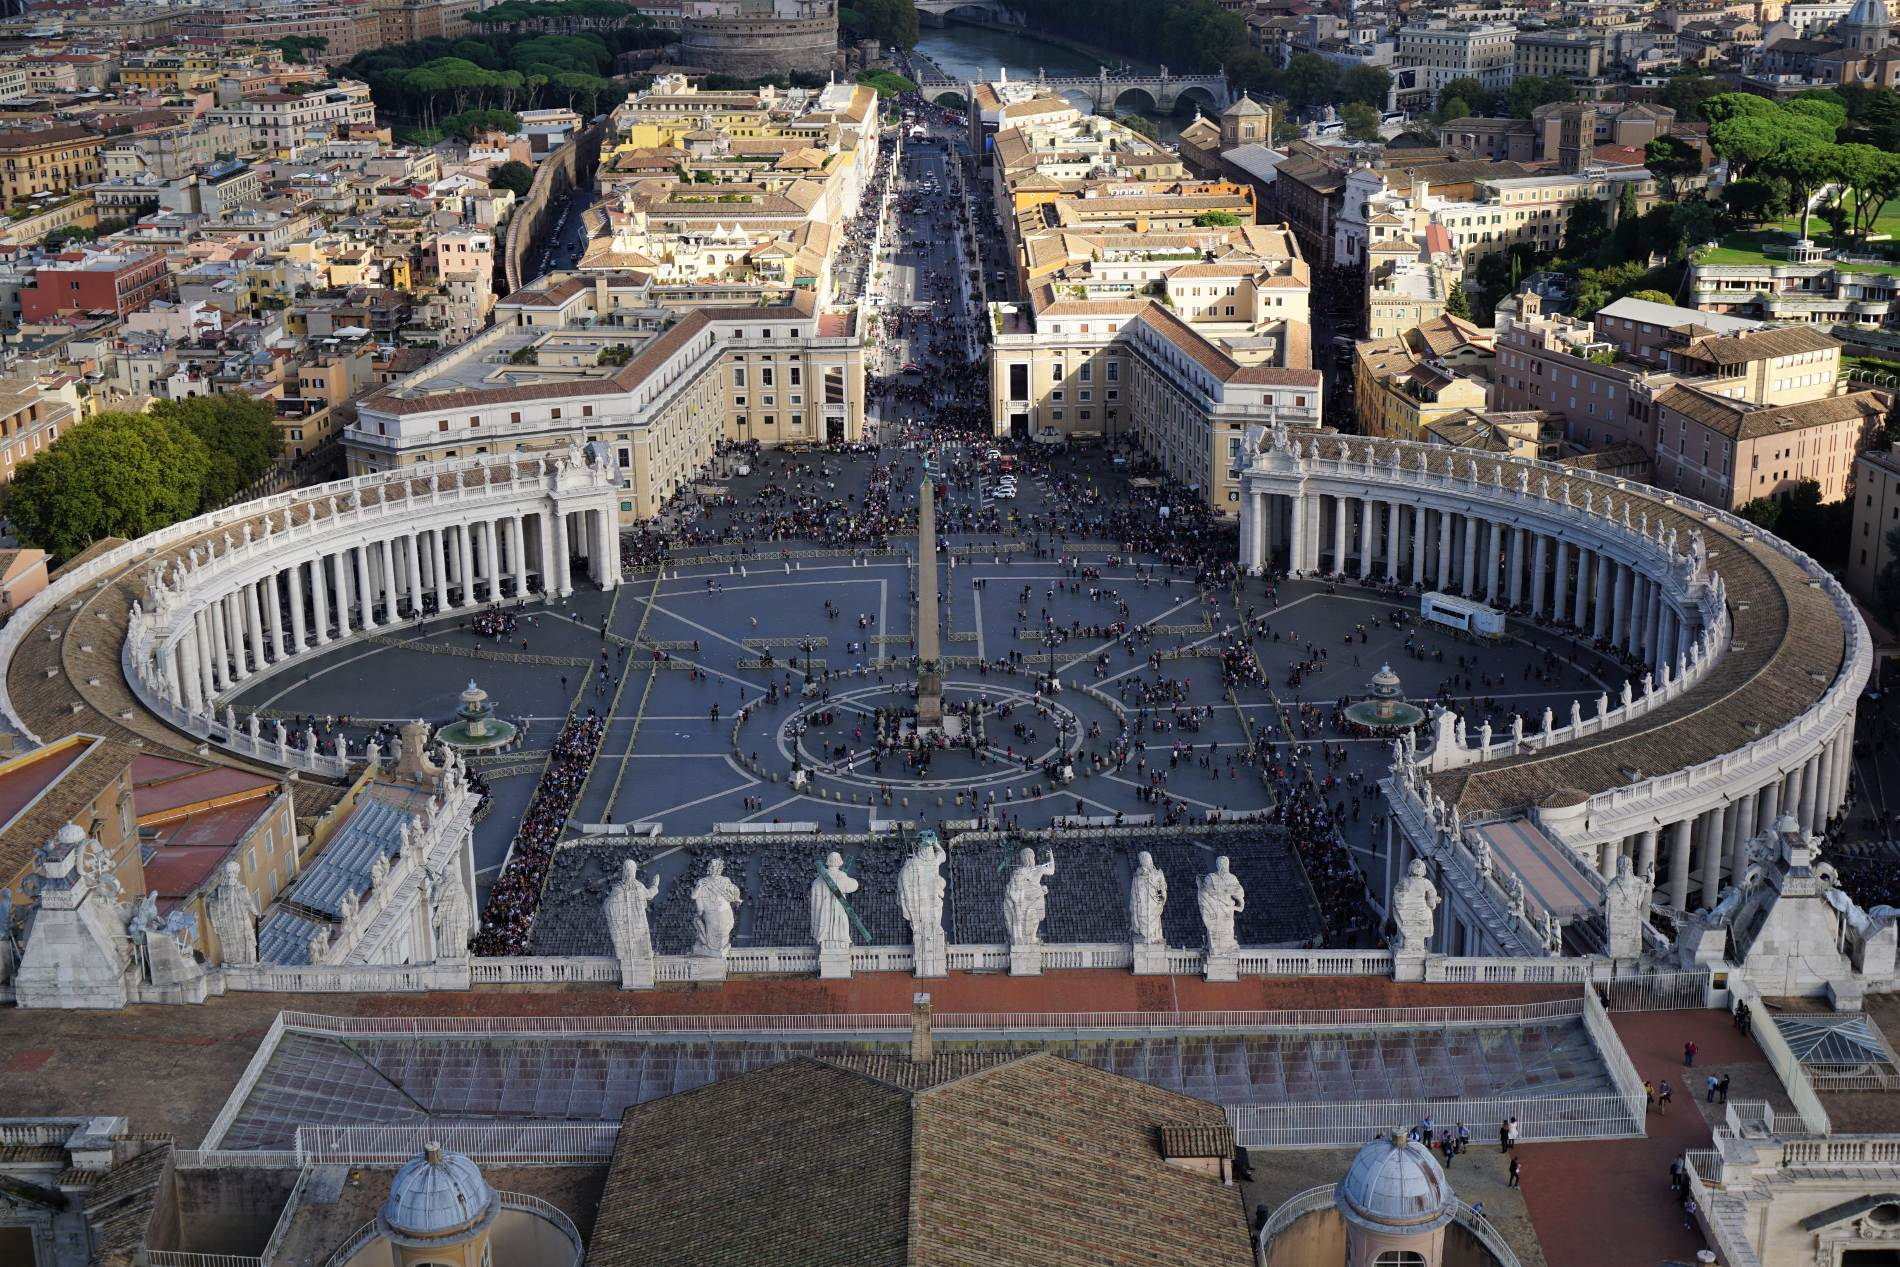 Saint Peter's square as viewed from the rooftop of Saint Peter's Basilica in Vatican city. Source: Truevoyagers